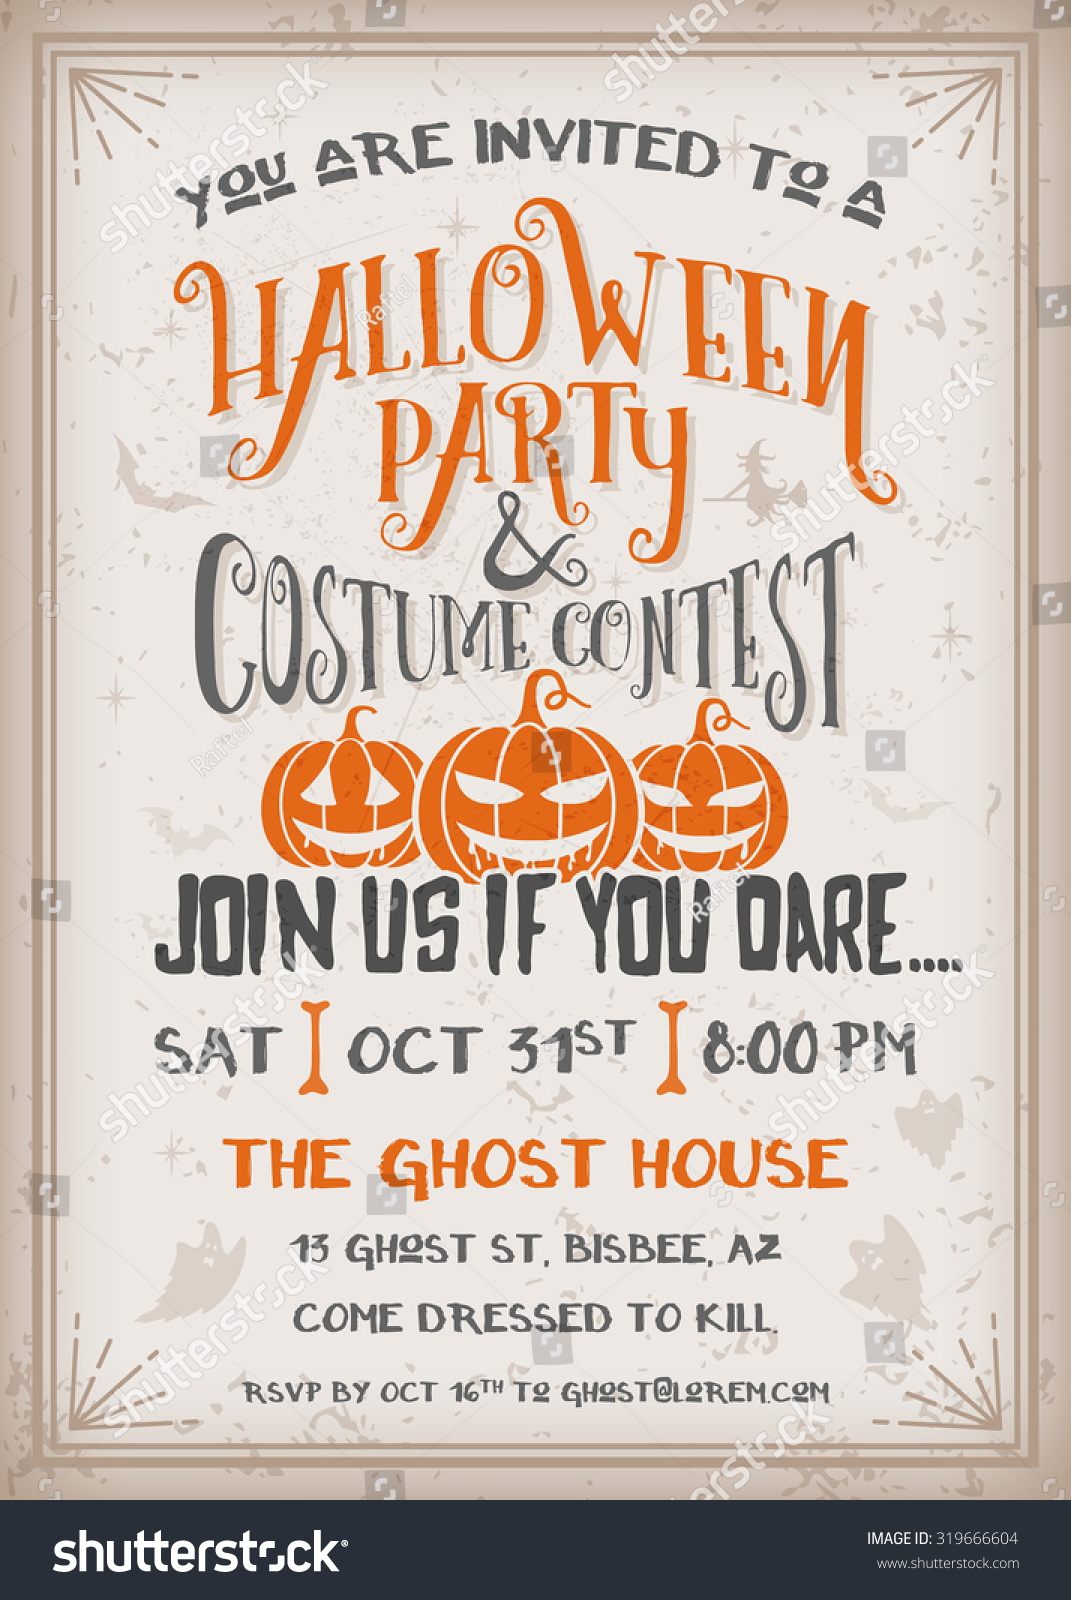 Halloween Party Costume Contest Invitation Scary Stock Vector ...